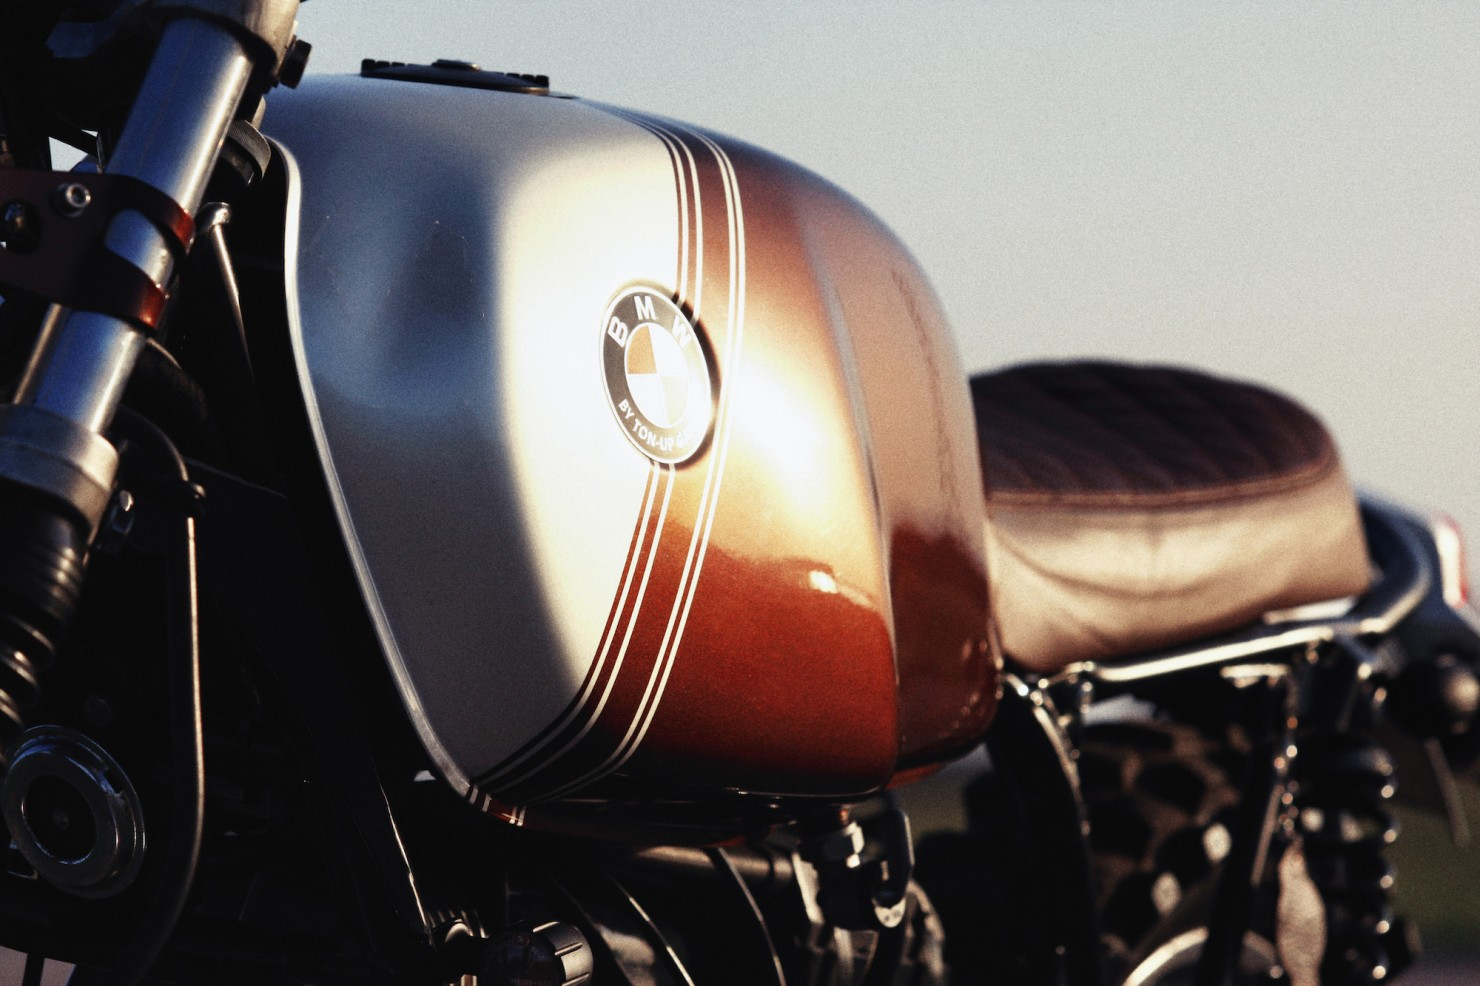 BMW R45 Custom Motorcycle 16